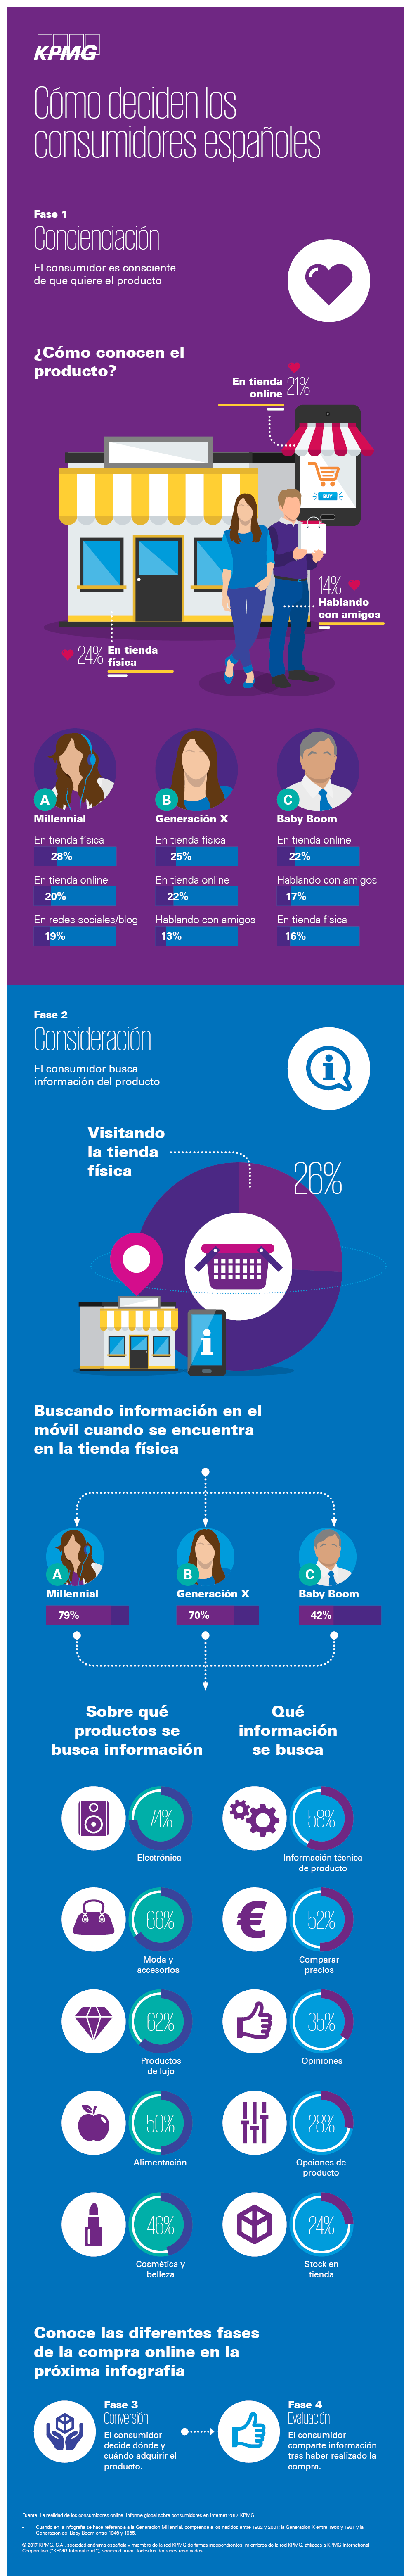 Infografia_Connected_Consumer_2AParte_v01_01082017